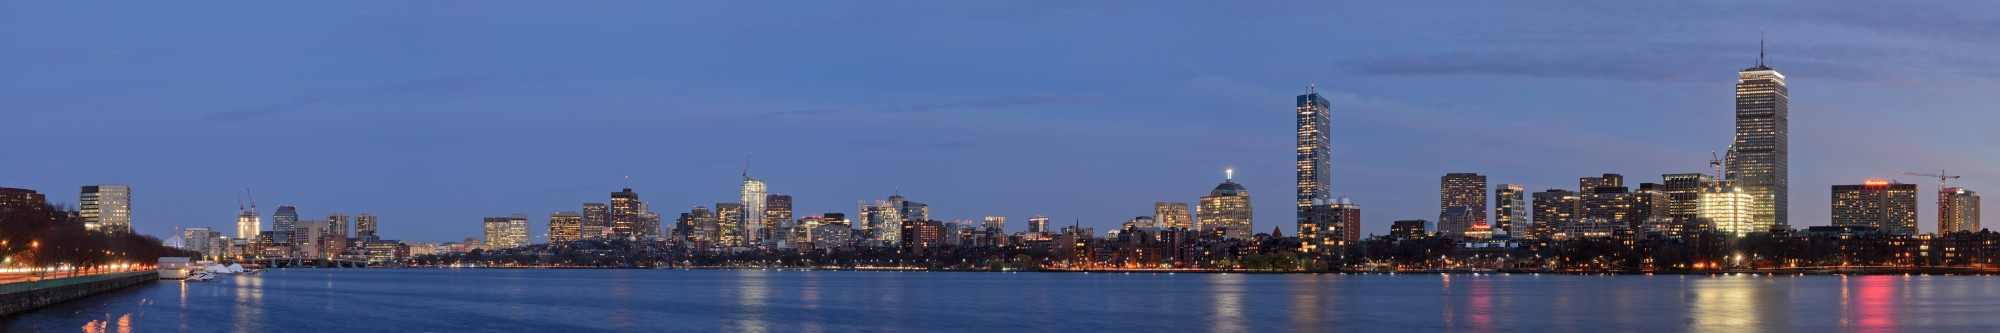 Boston skyline from Cambridge November 2015 panorama 2